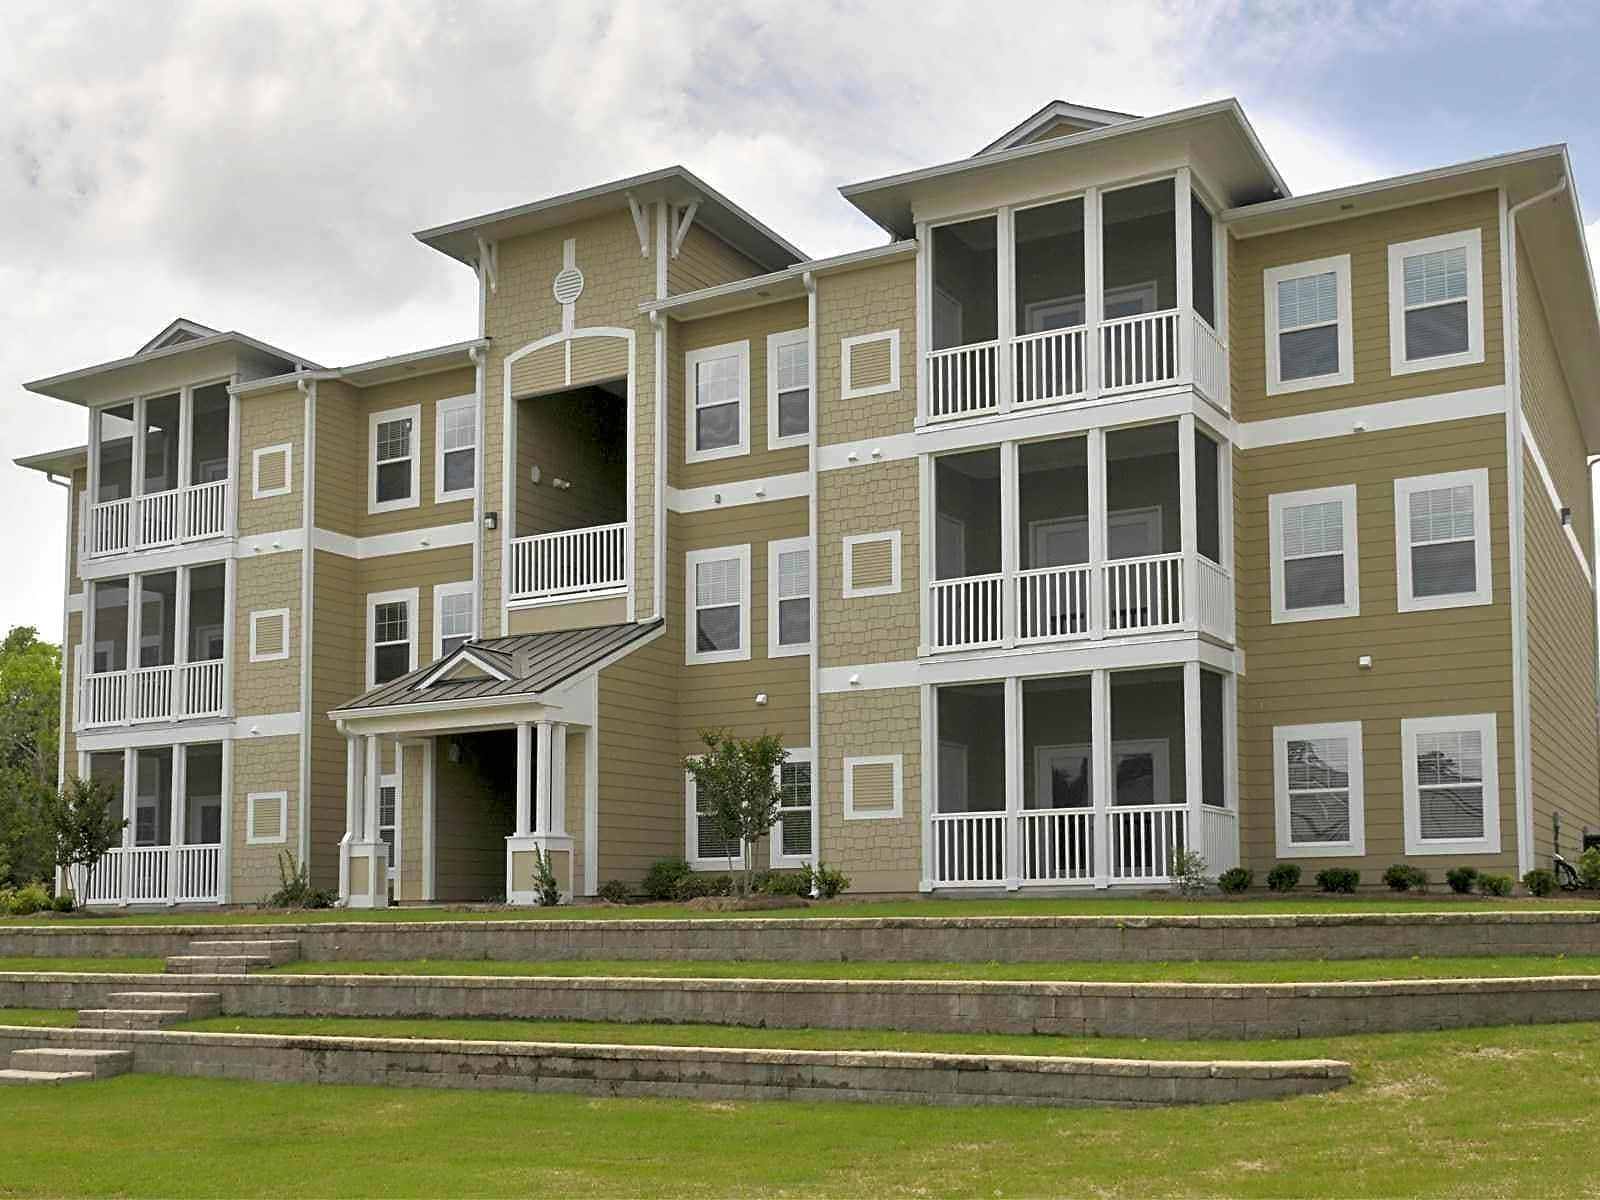 Apartments Near Macon State Thomaston Crossing Apartment Homes for Macon State College Students in Macon, GA